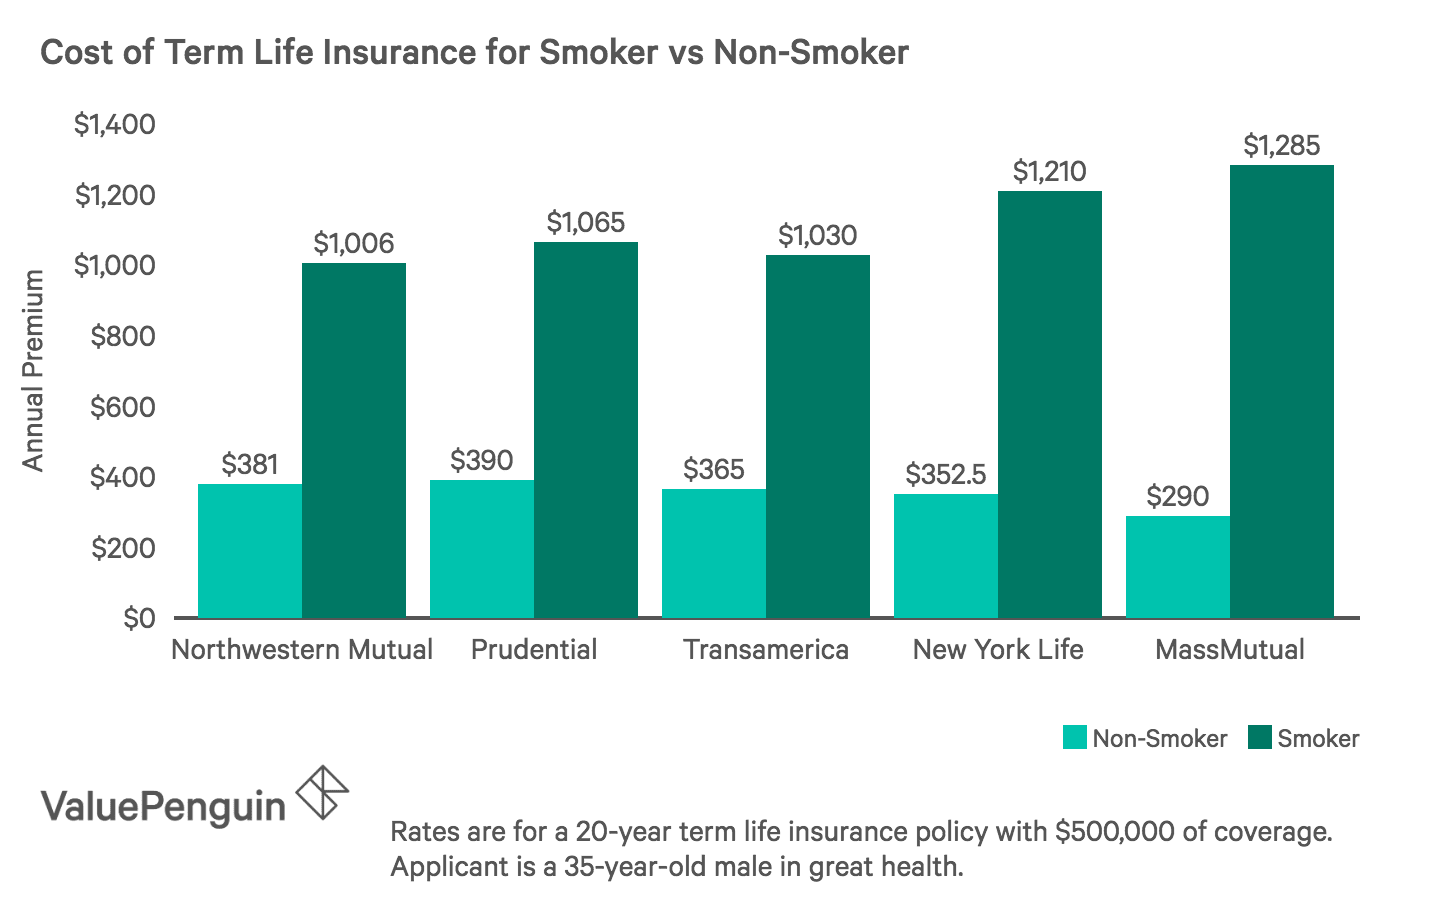 Term life insurance quotes for smokers vs nonsmokers